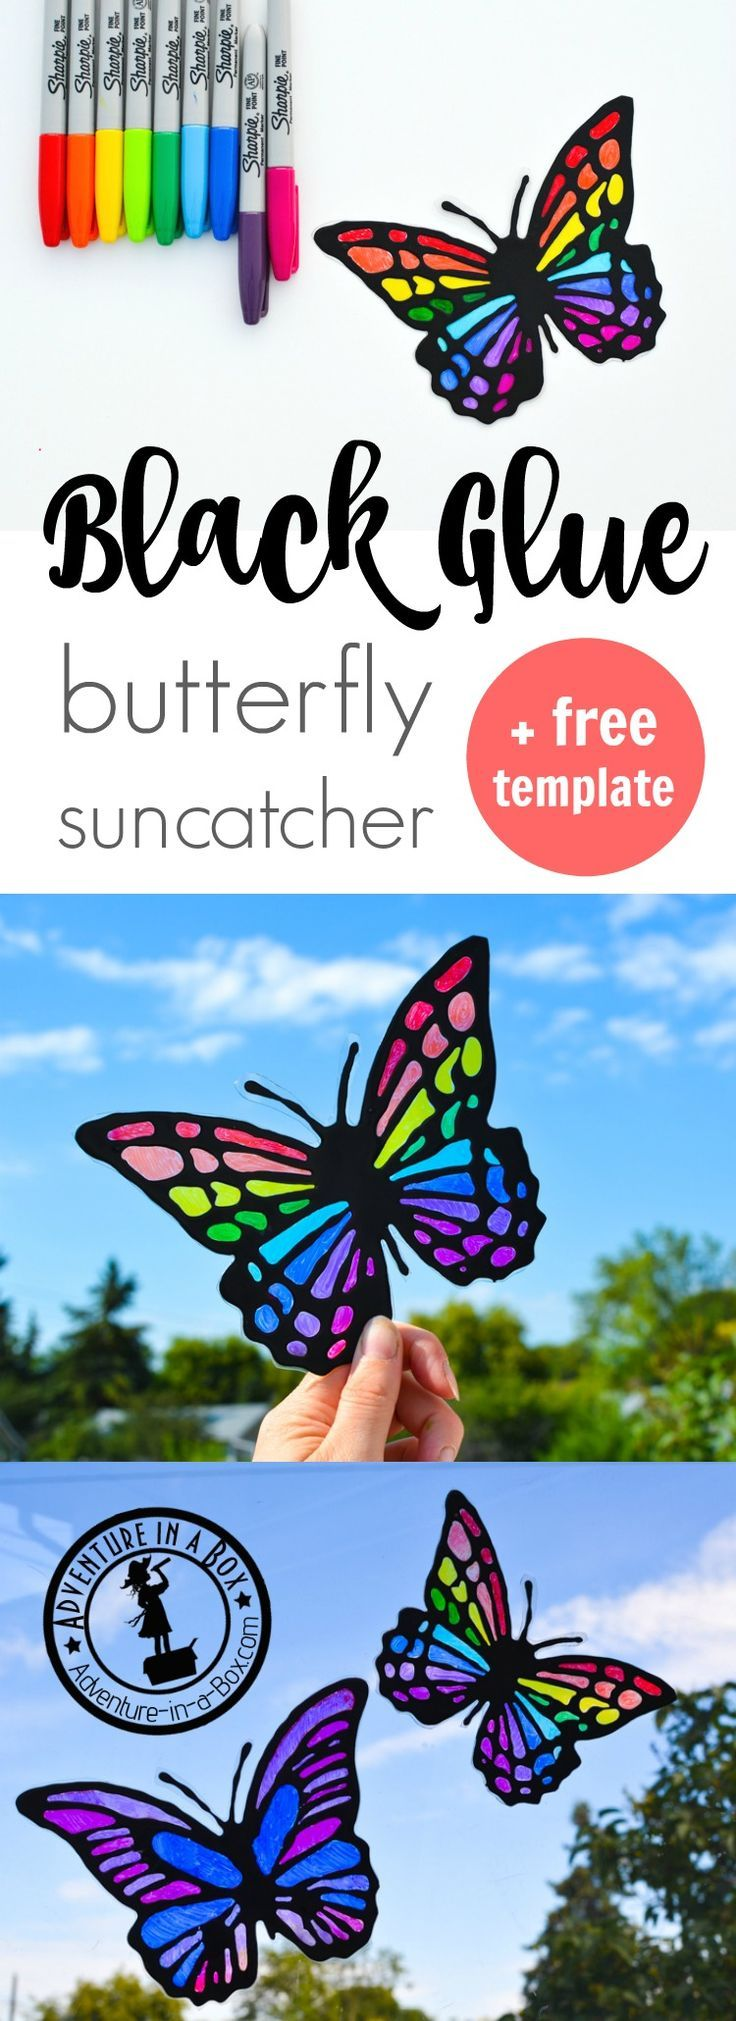 Want to make a cheery butterfly suncatcher craft with kids? It's easy if you make black glue and have on hand some sharpie markers and recyclables. Comes with a free printable template.